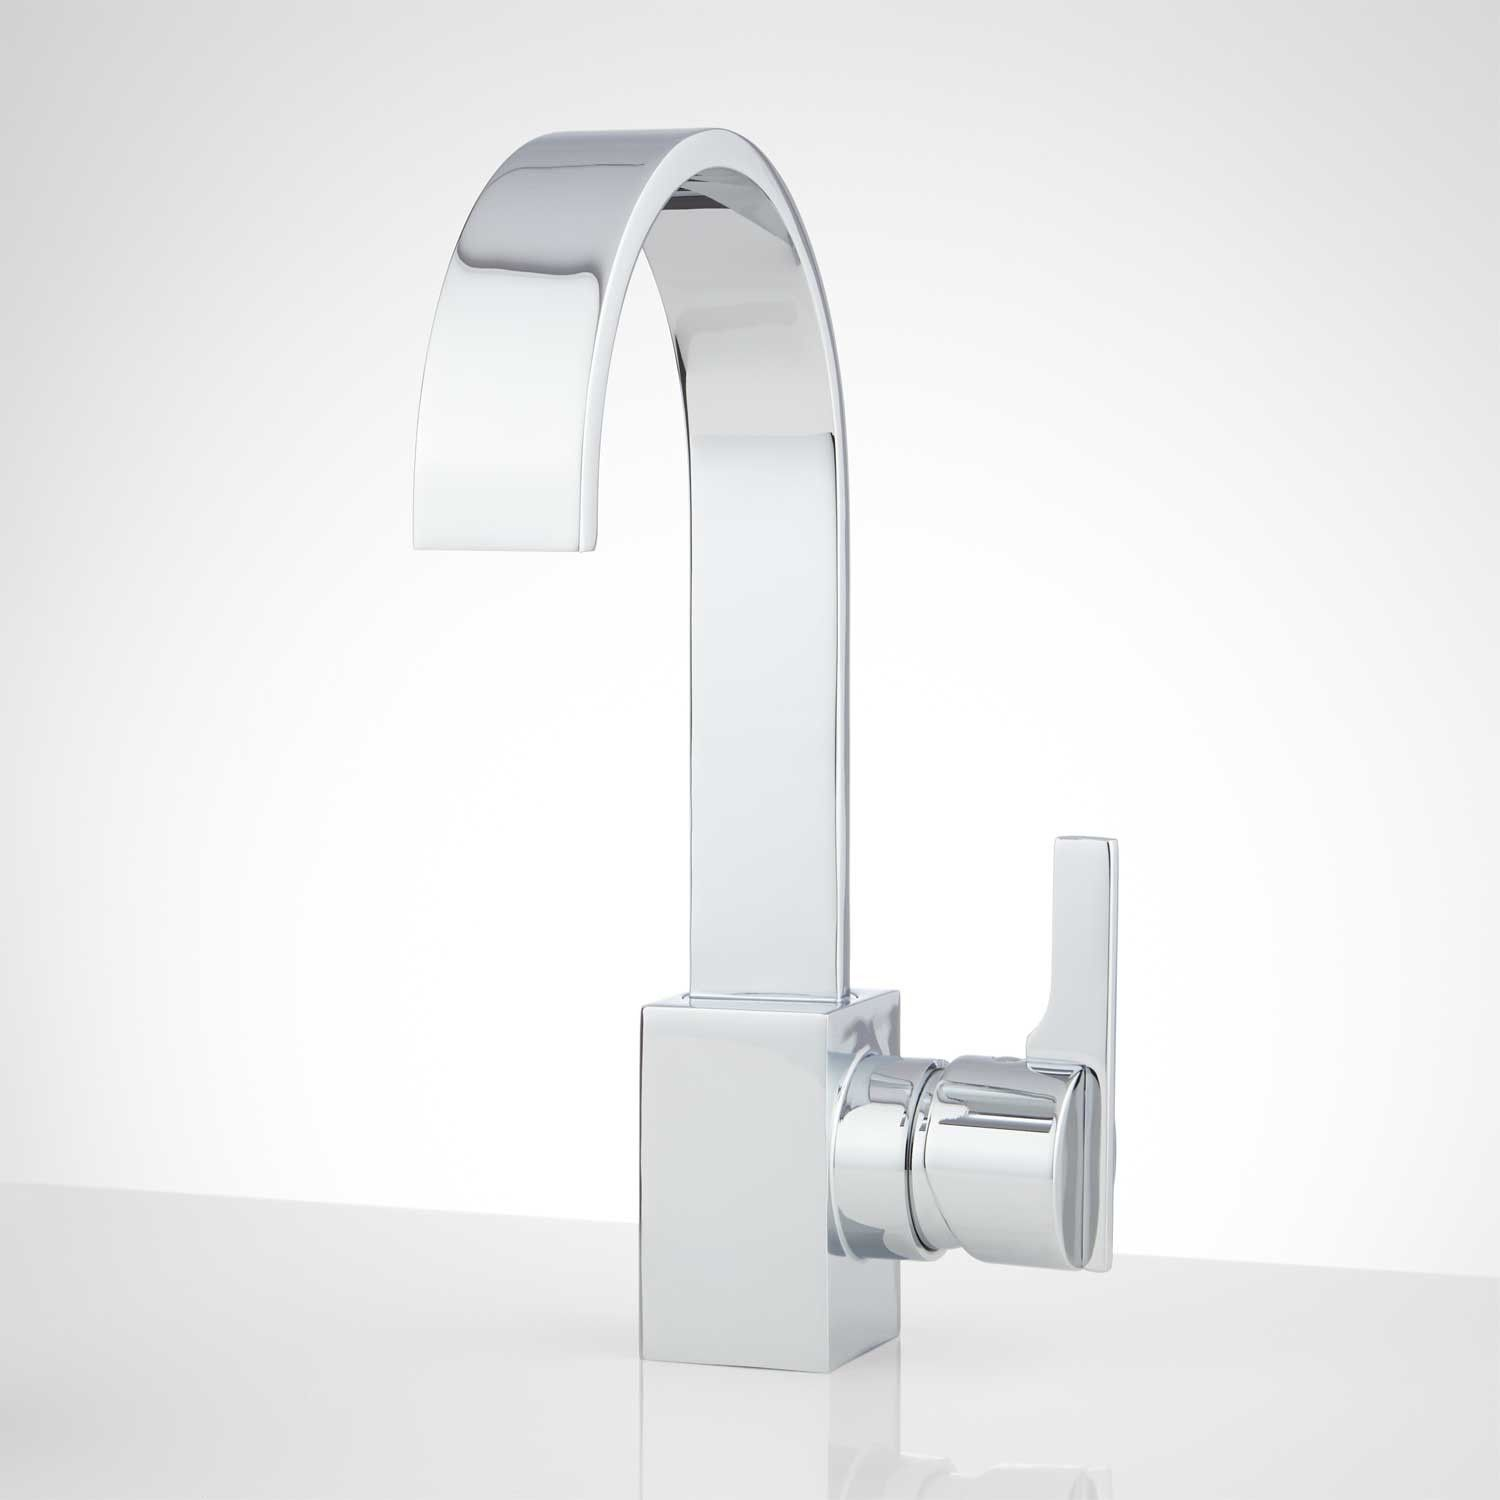 Ultra Single-Hole Bathroom Faucet with Pop-Up Drain | Faucet, Powder ...